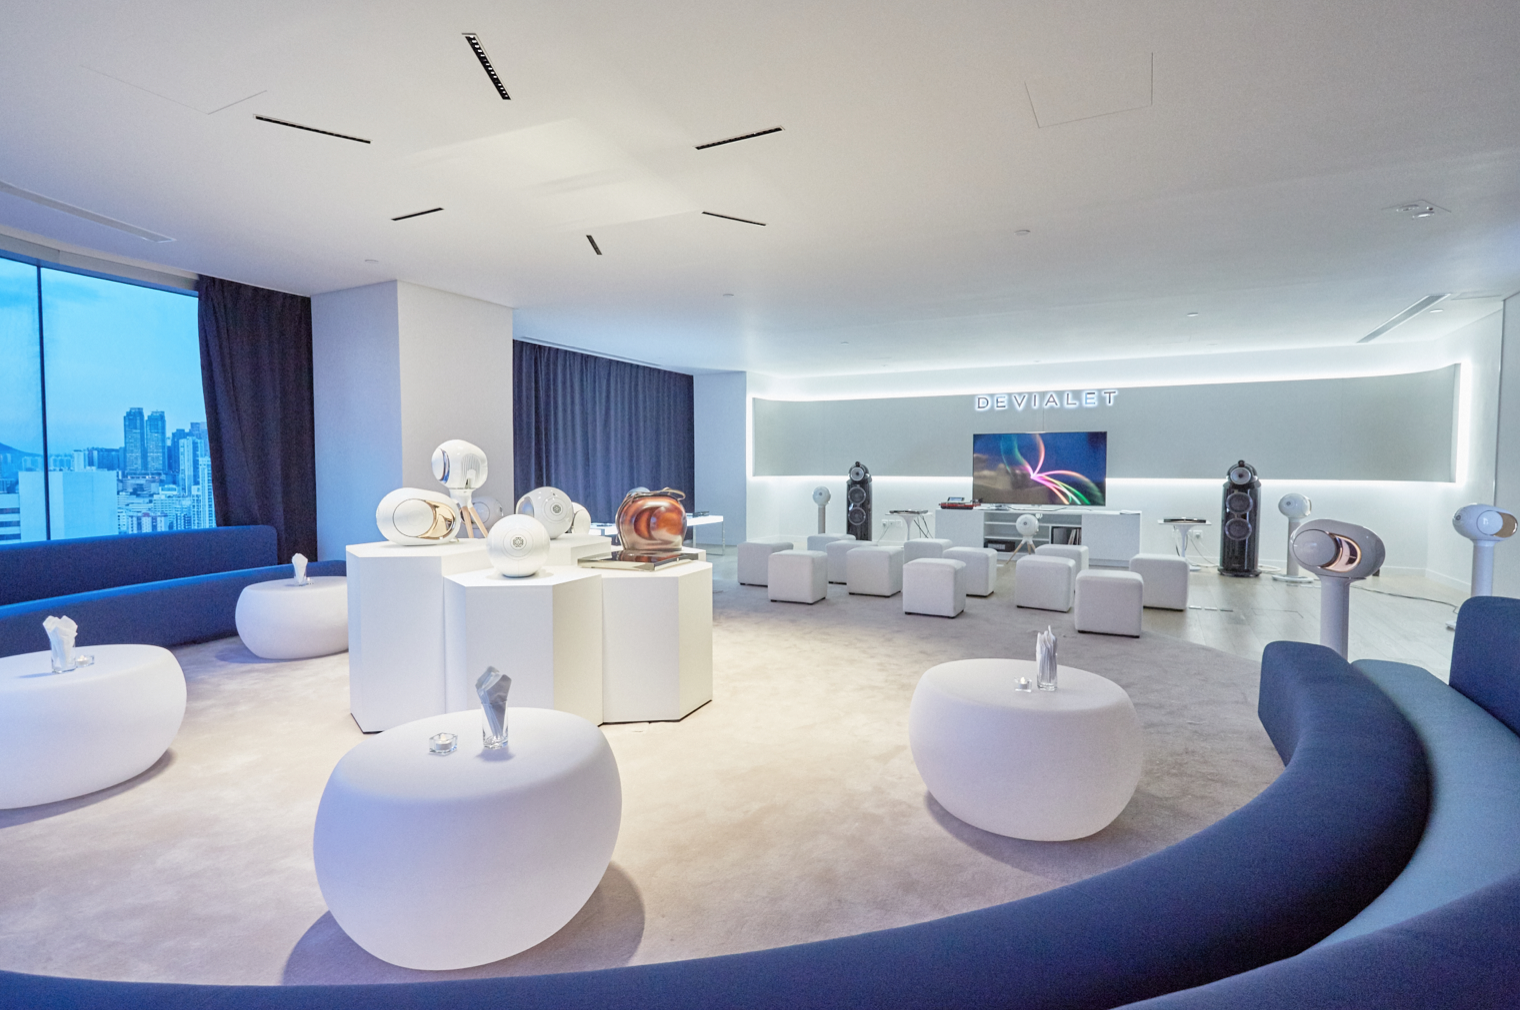 The Devialet Lounge.png